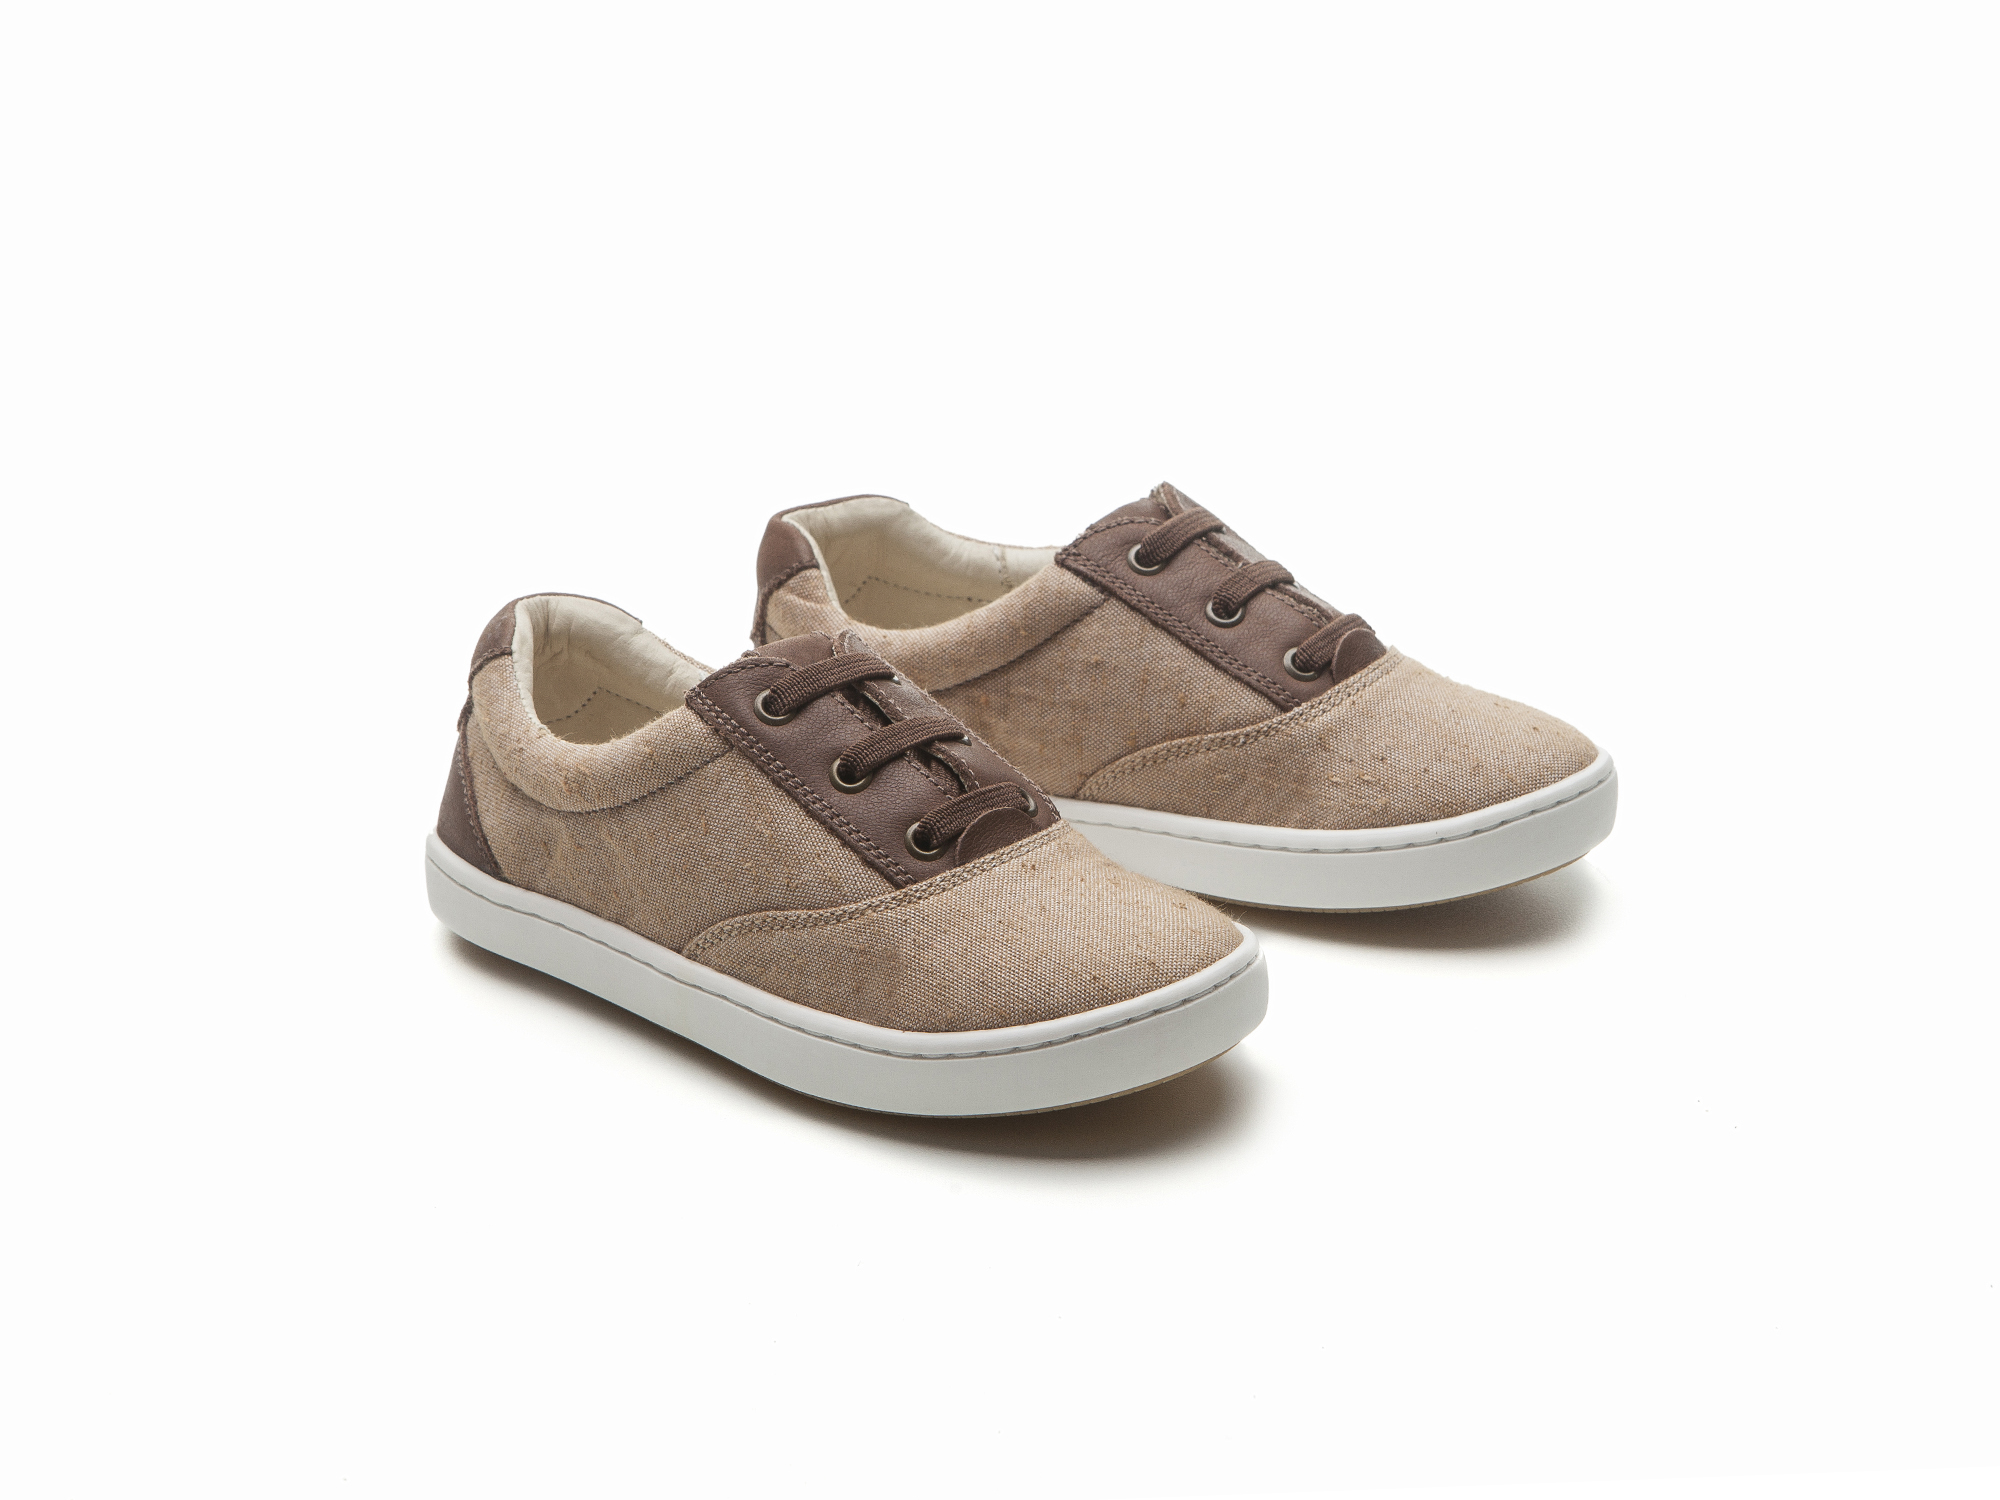 Tênis Garb Kraft Canvas/ Old Brown Junior 4 à 8 anos - 0